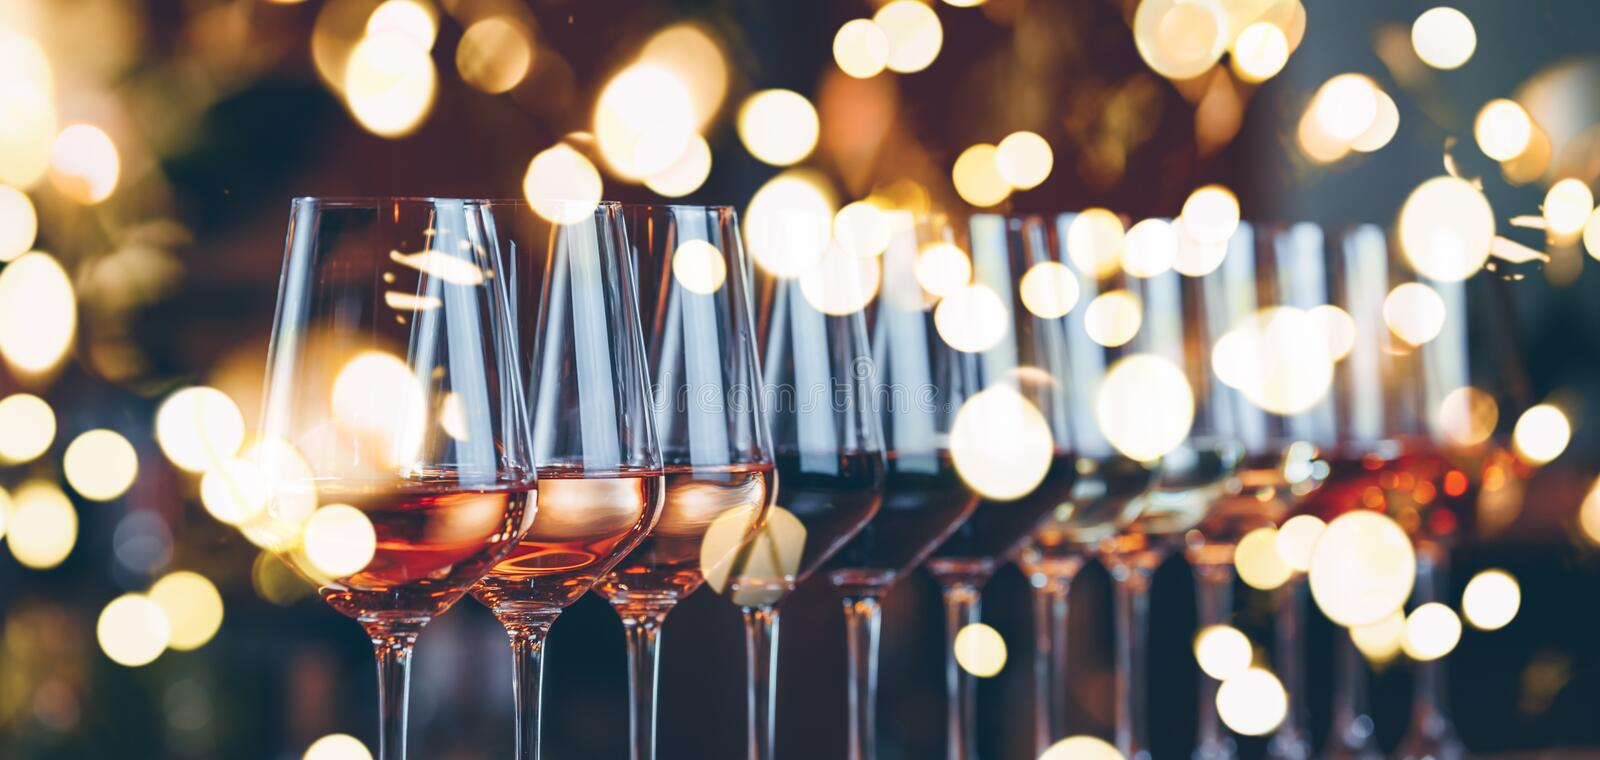 Wine glasses in a row. Buffet table celebration of wine tasting. Nightlife, celebration and entertainment concept. Horizontal, cold toned image, wide screen stock photos